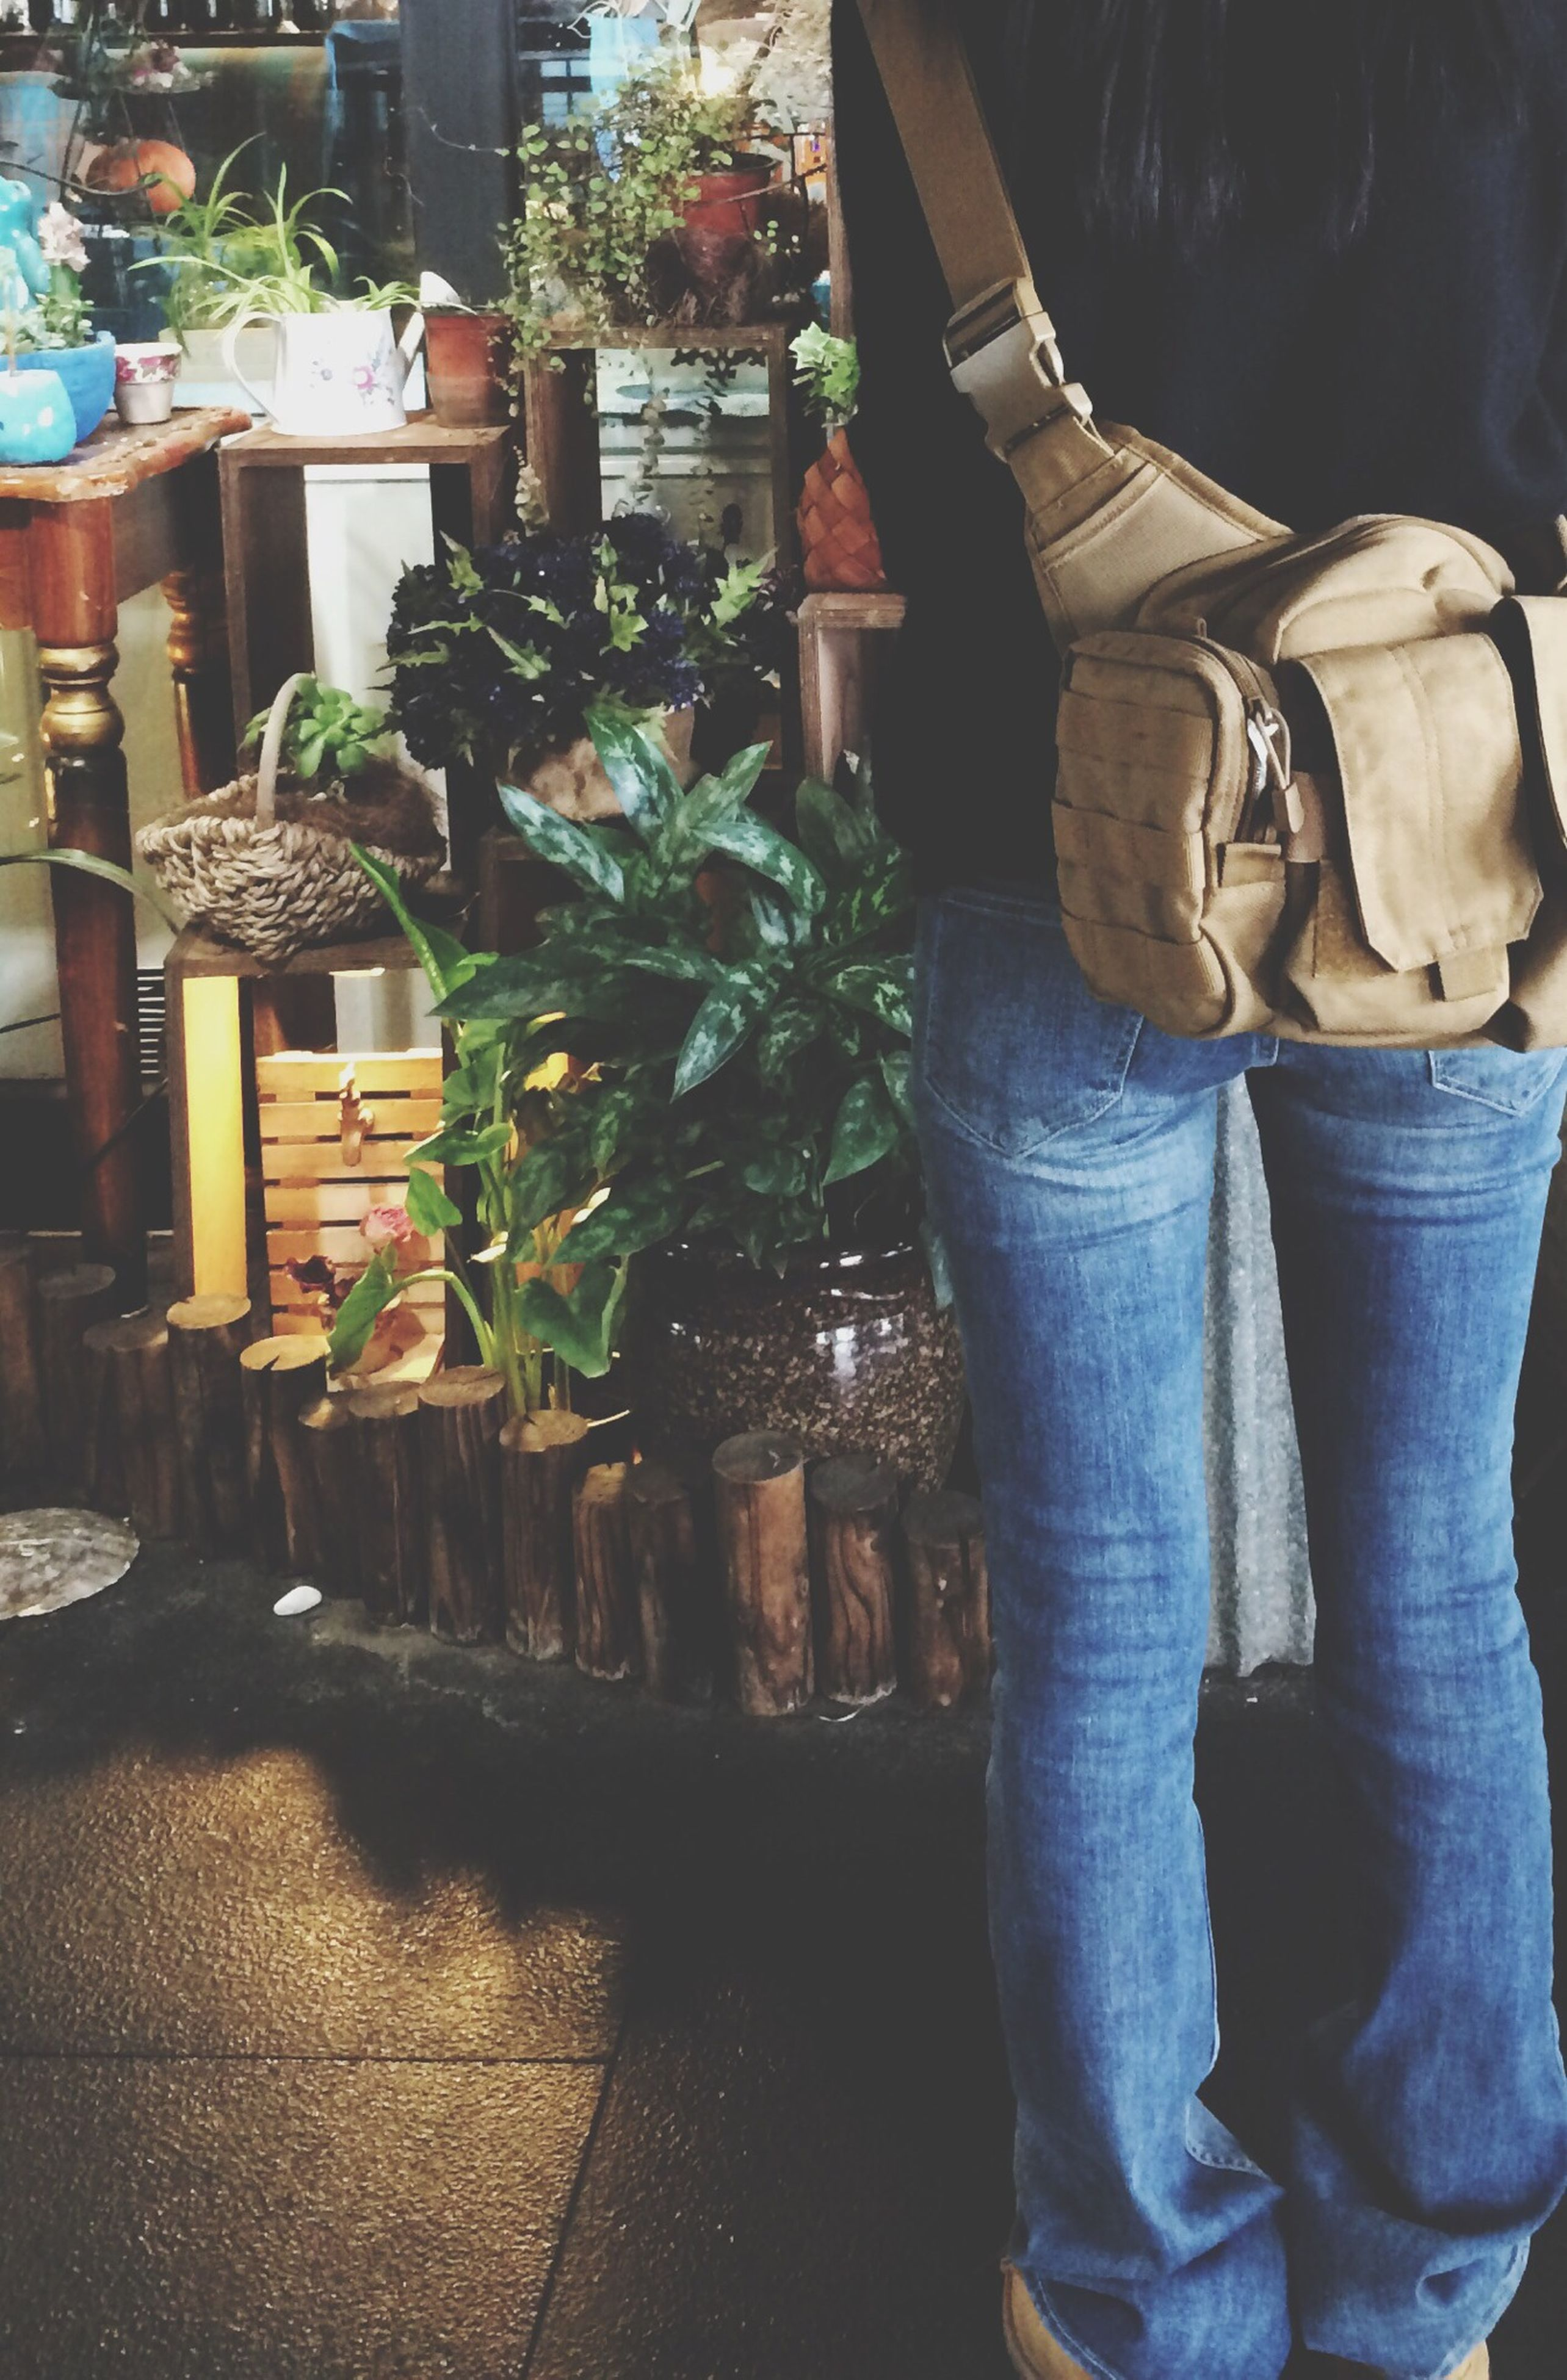 lifestyles, standing, men, retail, low section, for sale, casual clothing, person, market, market stall, leisure activity, potted plant, freshness, food and drink, shoe, outdoors